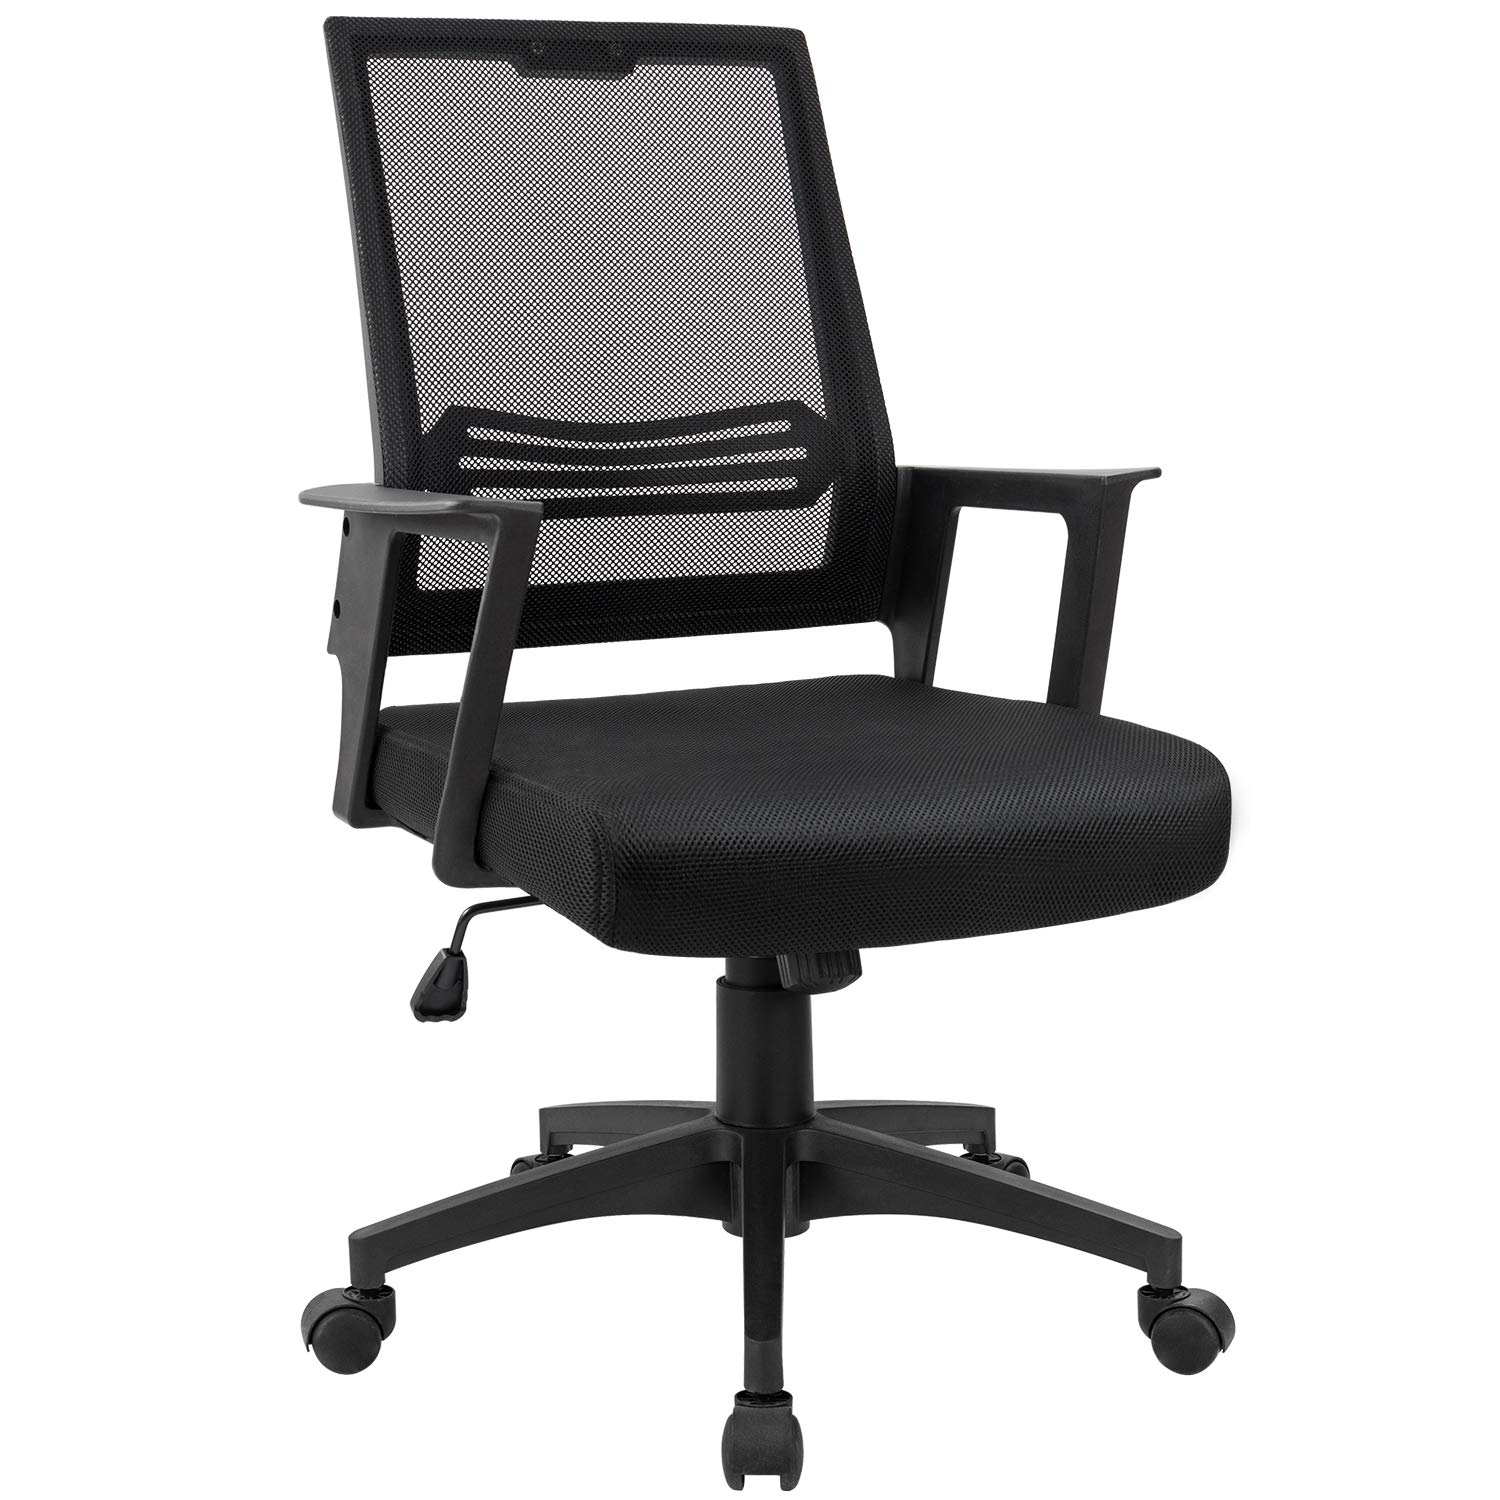 Devoko Office Chair Ergonomic Mid Back Swivel Mesh Desk Chair Height Adjustable Lumbar Support Computer Chair with Armrest (Black) by Devoko